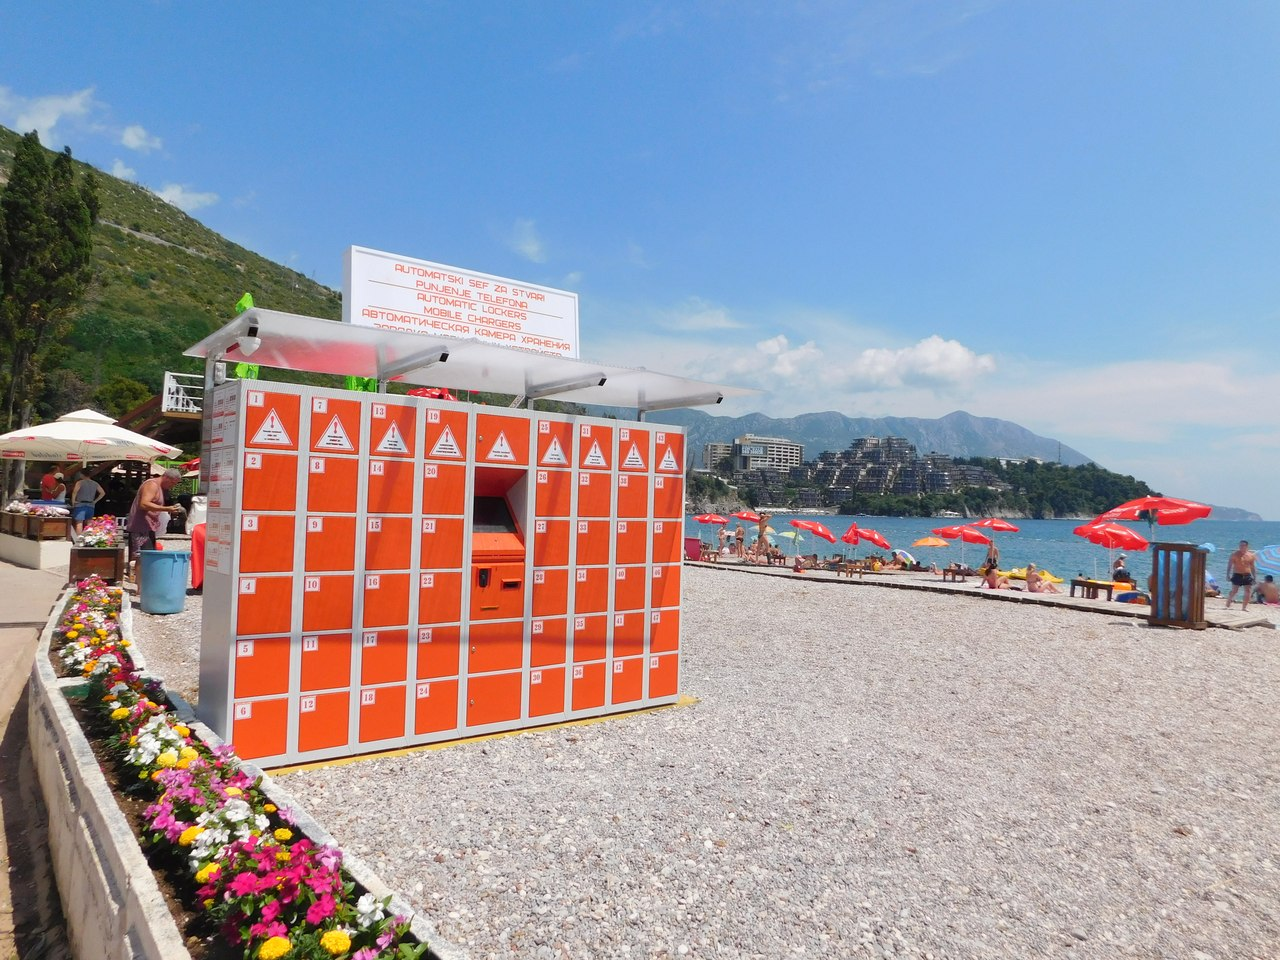 Beach_lockers_Montenegro_2016.jpg